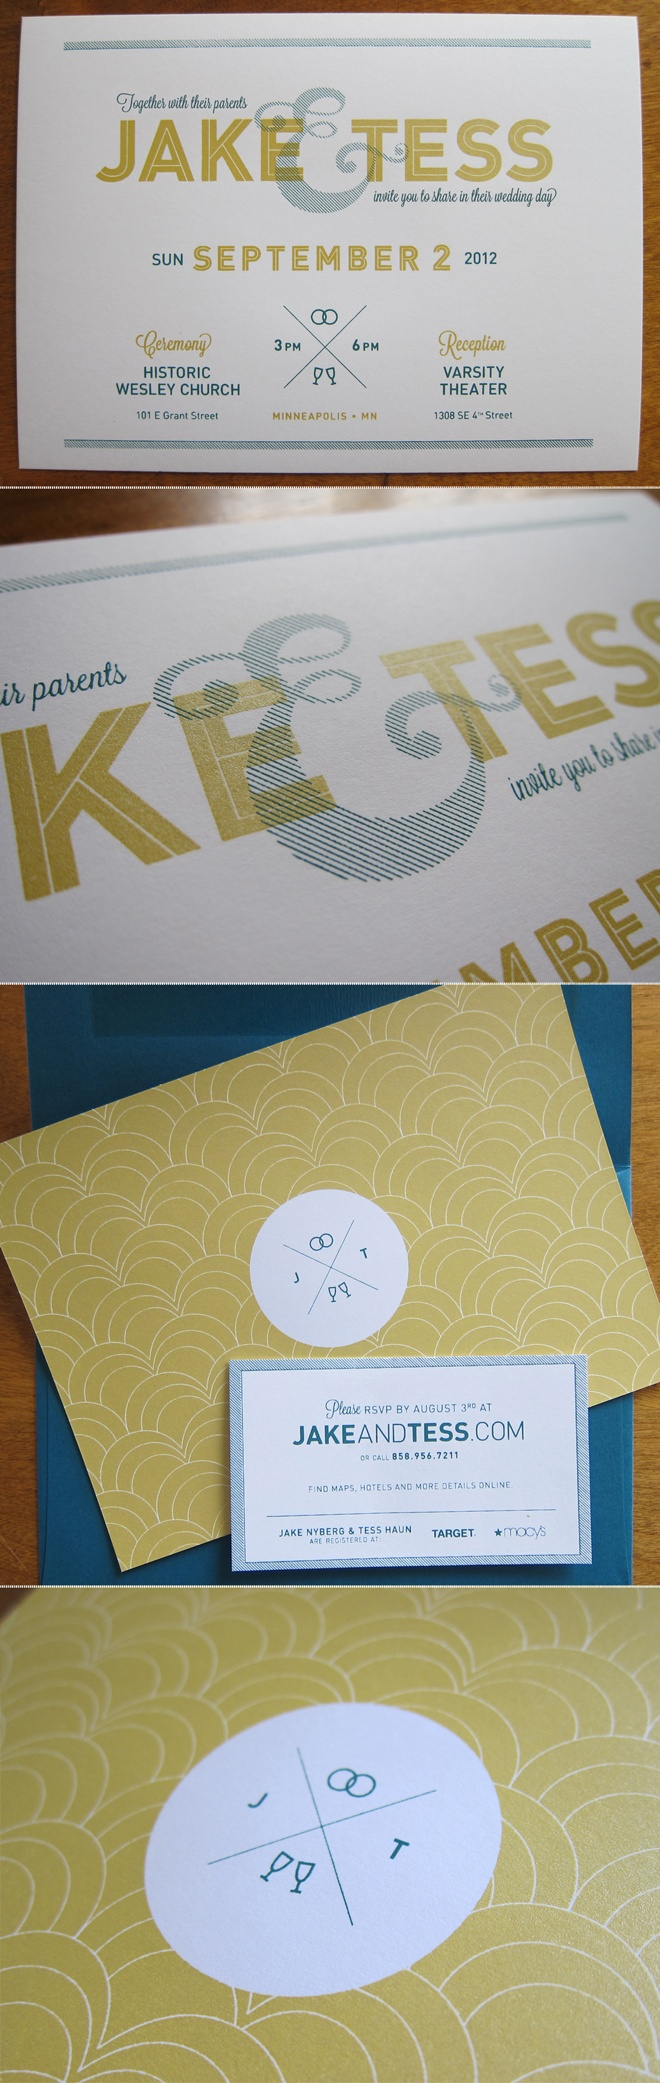 218 Best Wedding Stationery Images On Pinterest Wedding Stationery